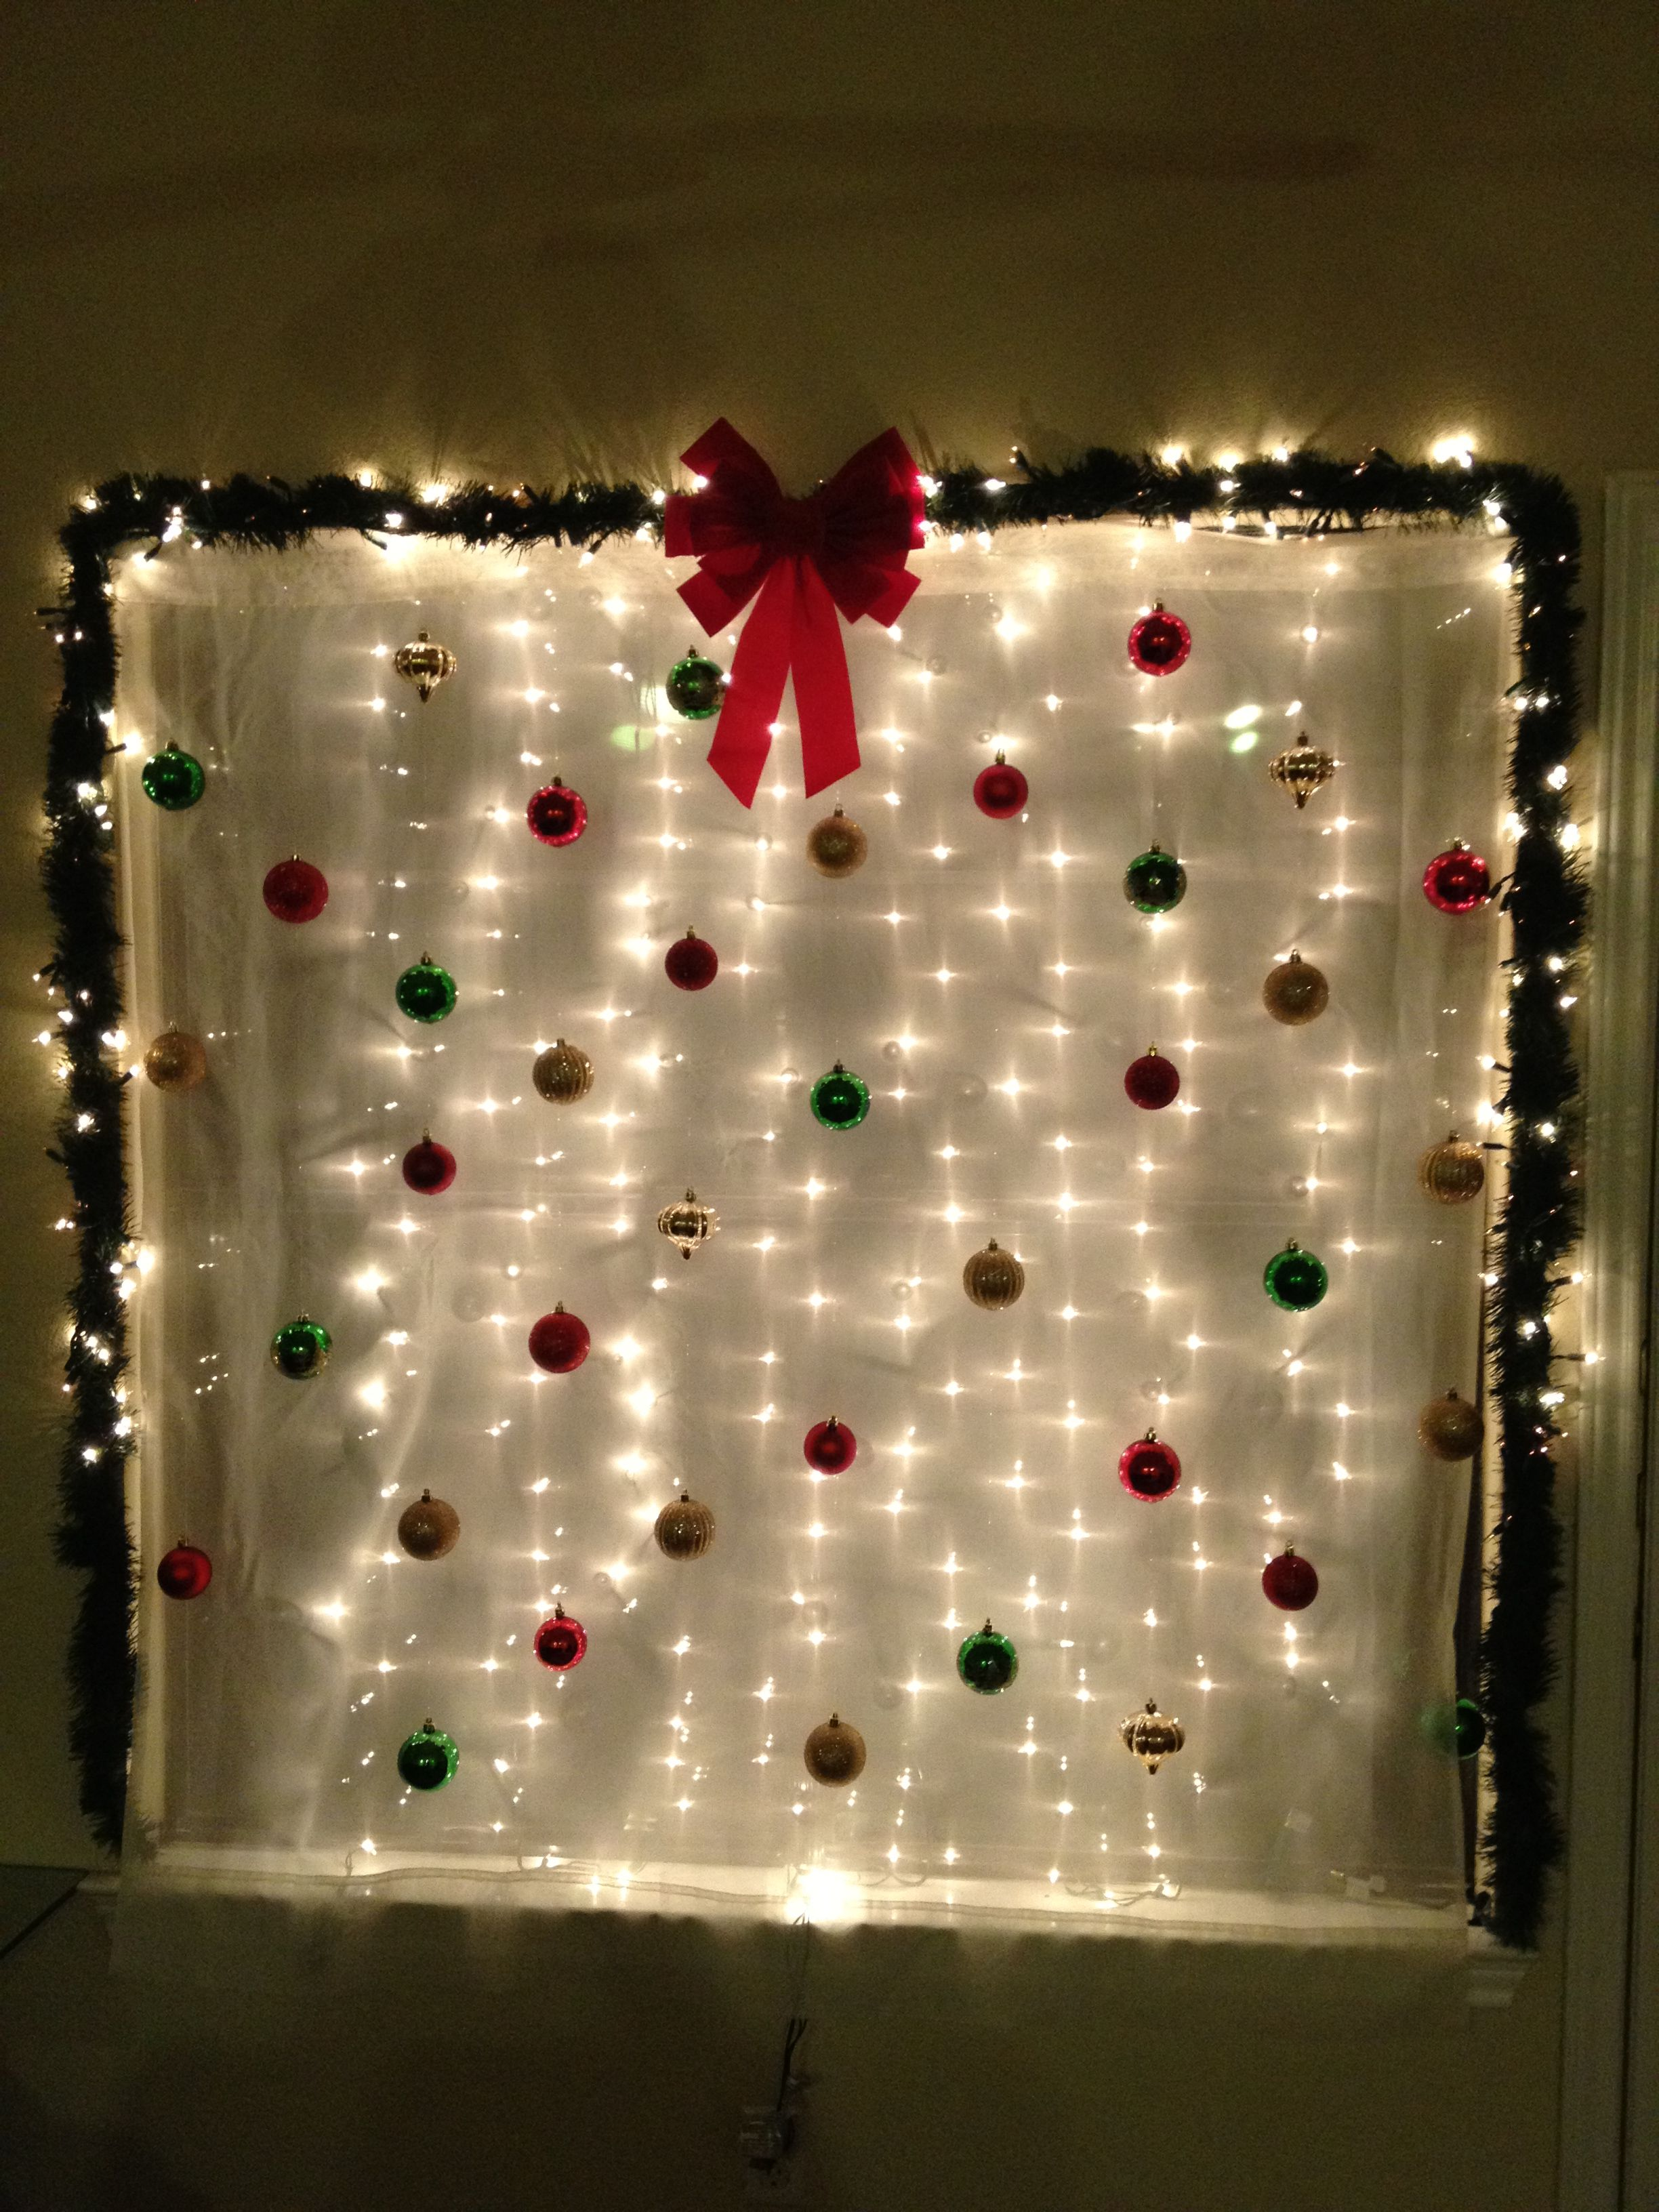 Apartment Window Decoration Christmas Party Backdrop Diy Christmas Party Christmas Decorations Apartment